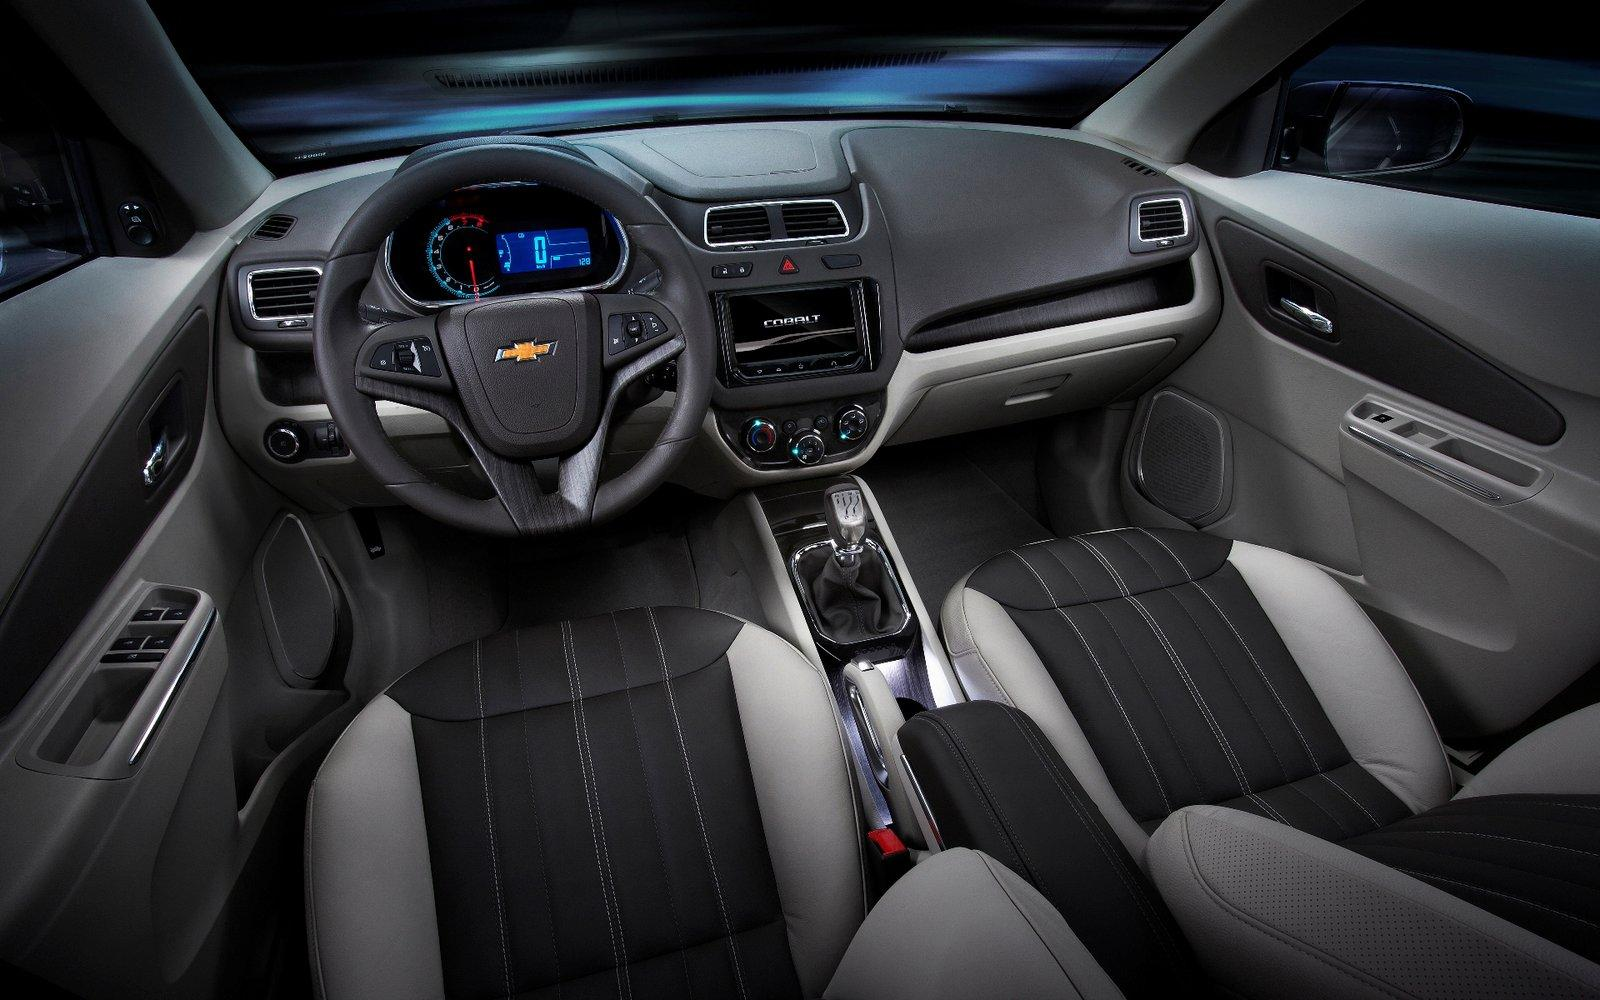 Pictures Of Chevrolet Cobalt 2016 Auto Database